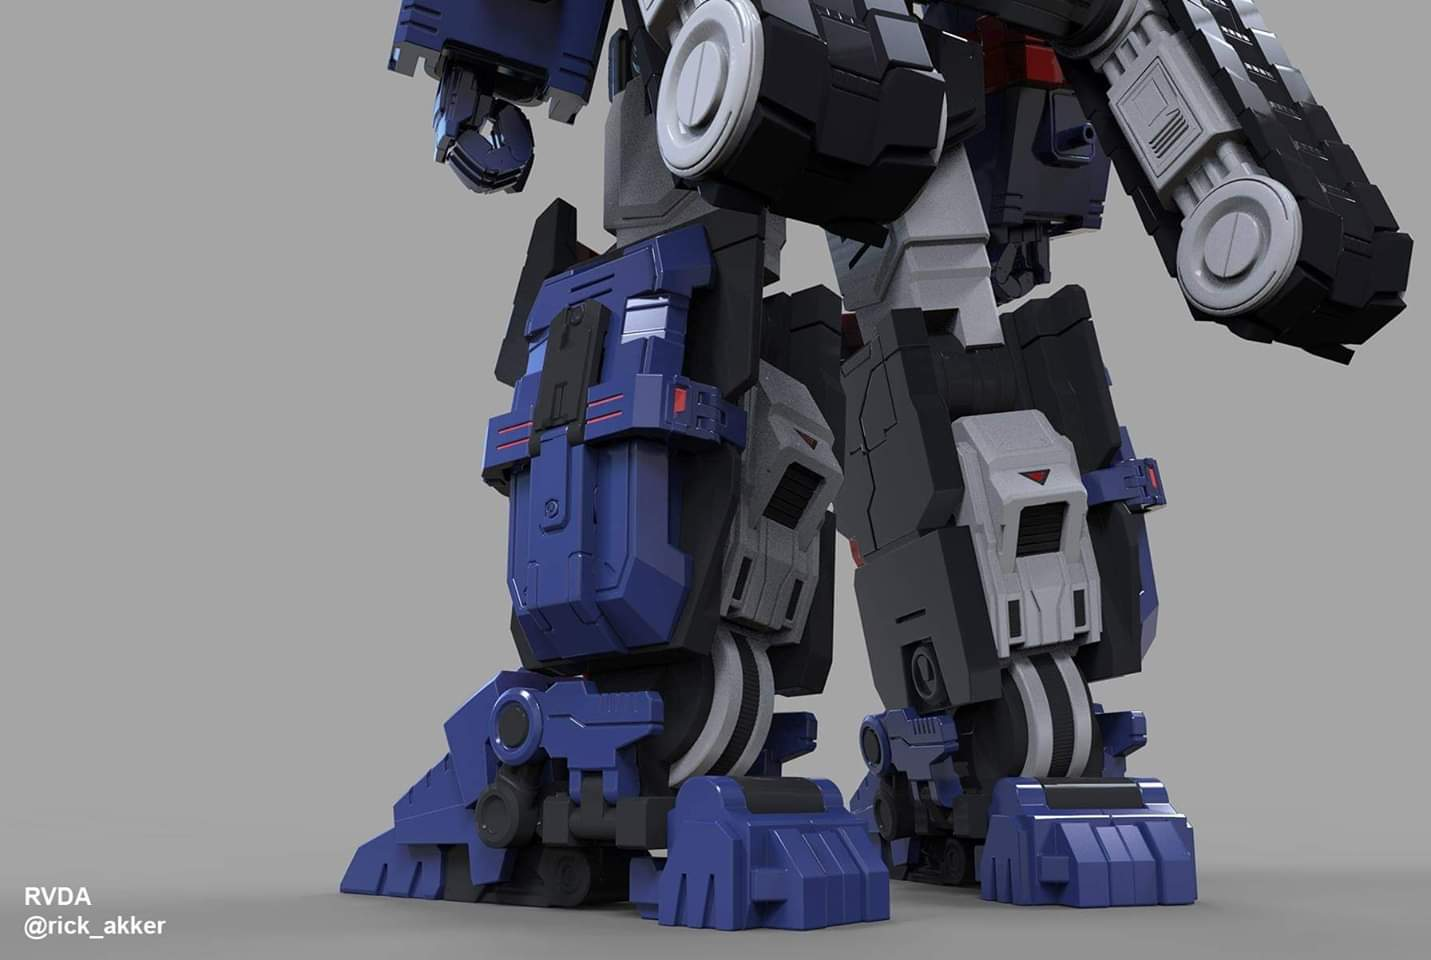 [Mastermind Creations] Produit Tiers - R-50 Supermax - aka Fortress/Forteresse Maximus des BD IDW QEOEVGYV_o